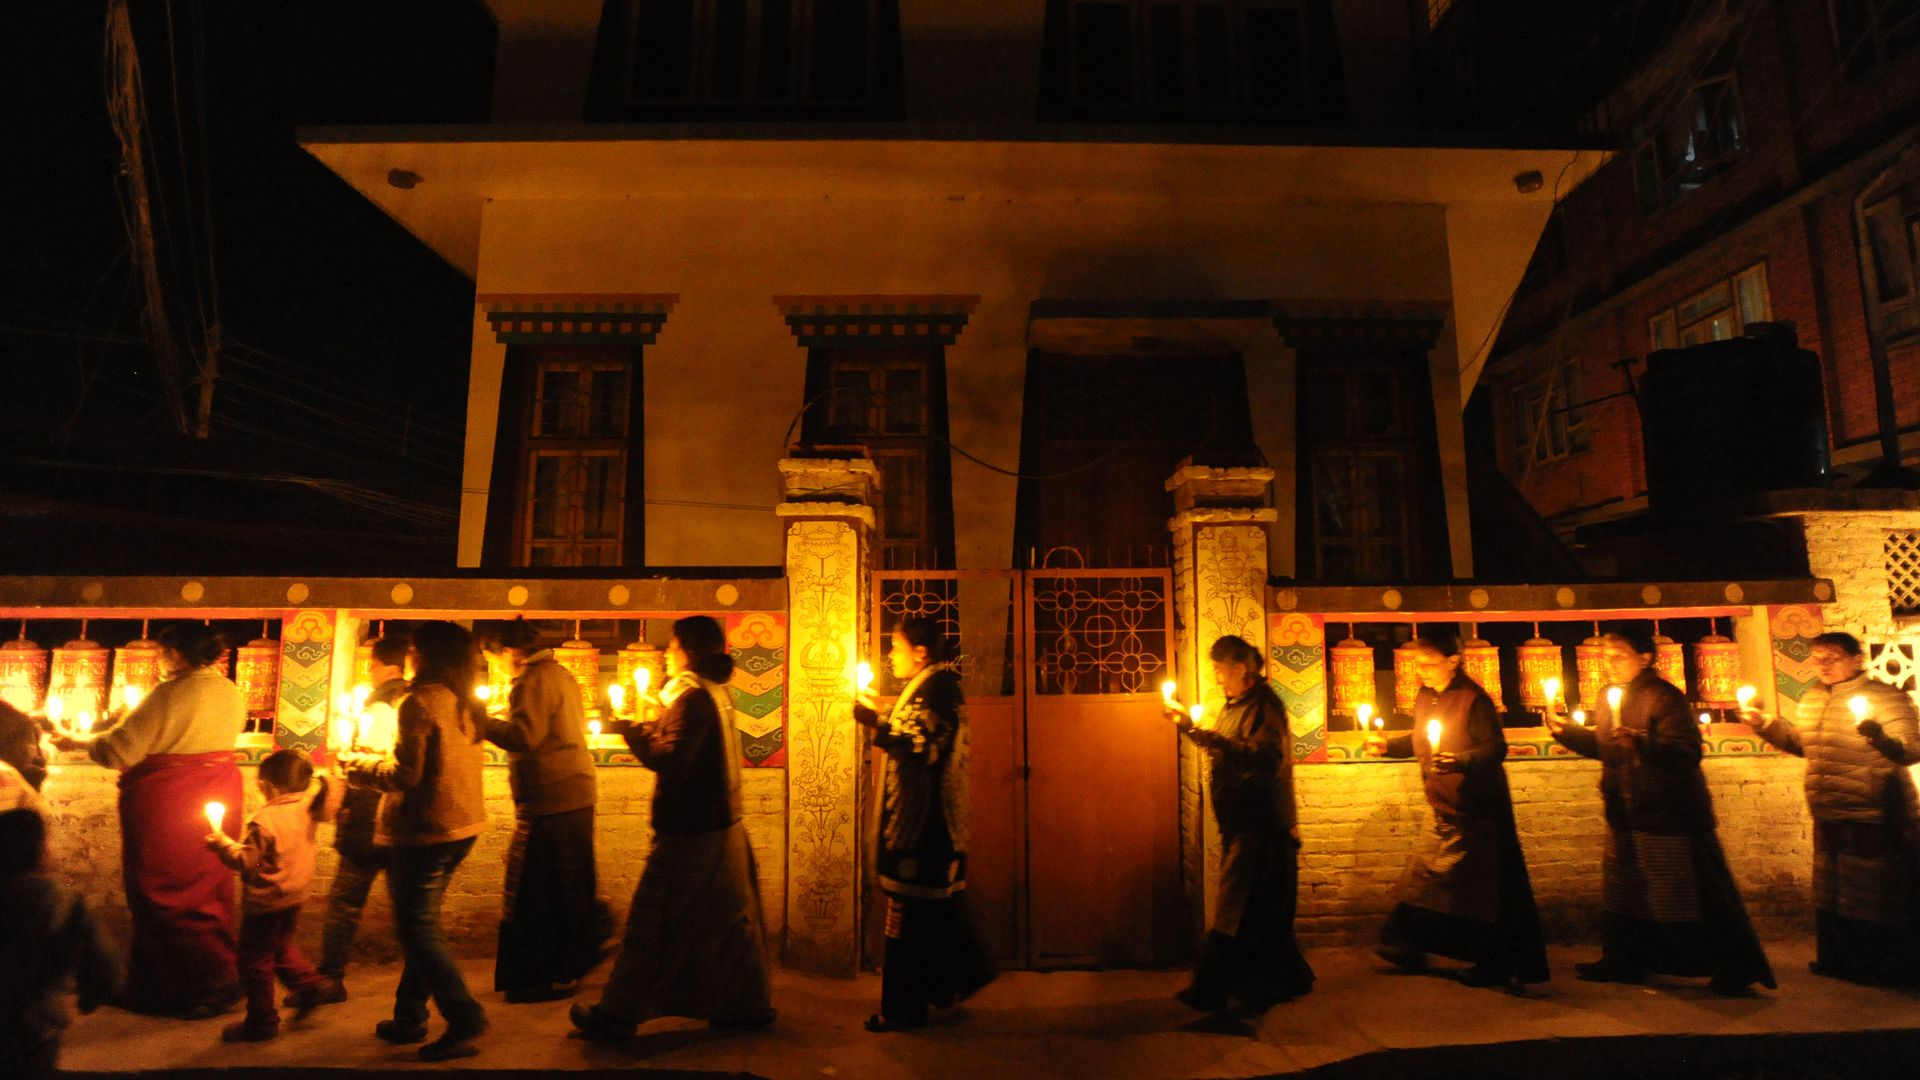 People walk around a temple with candles